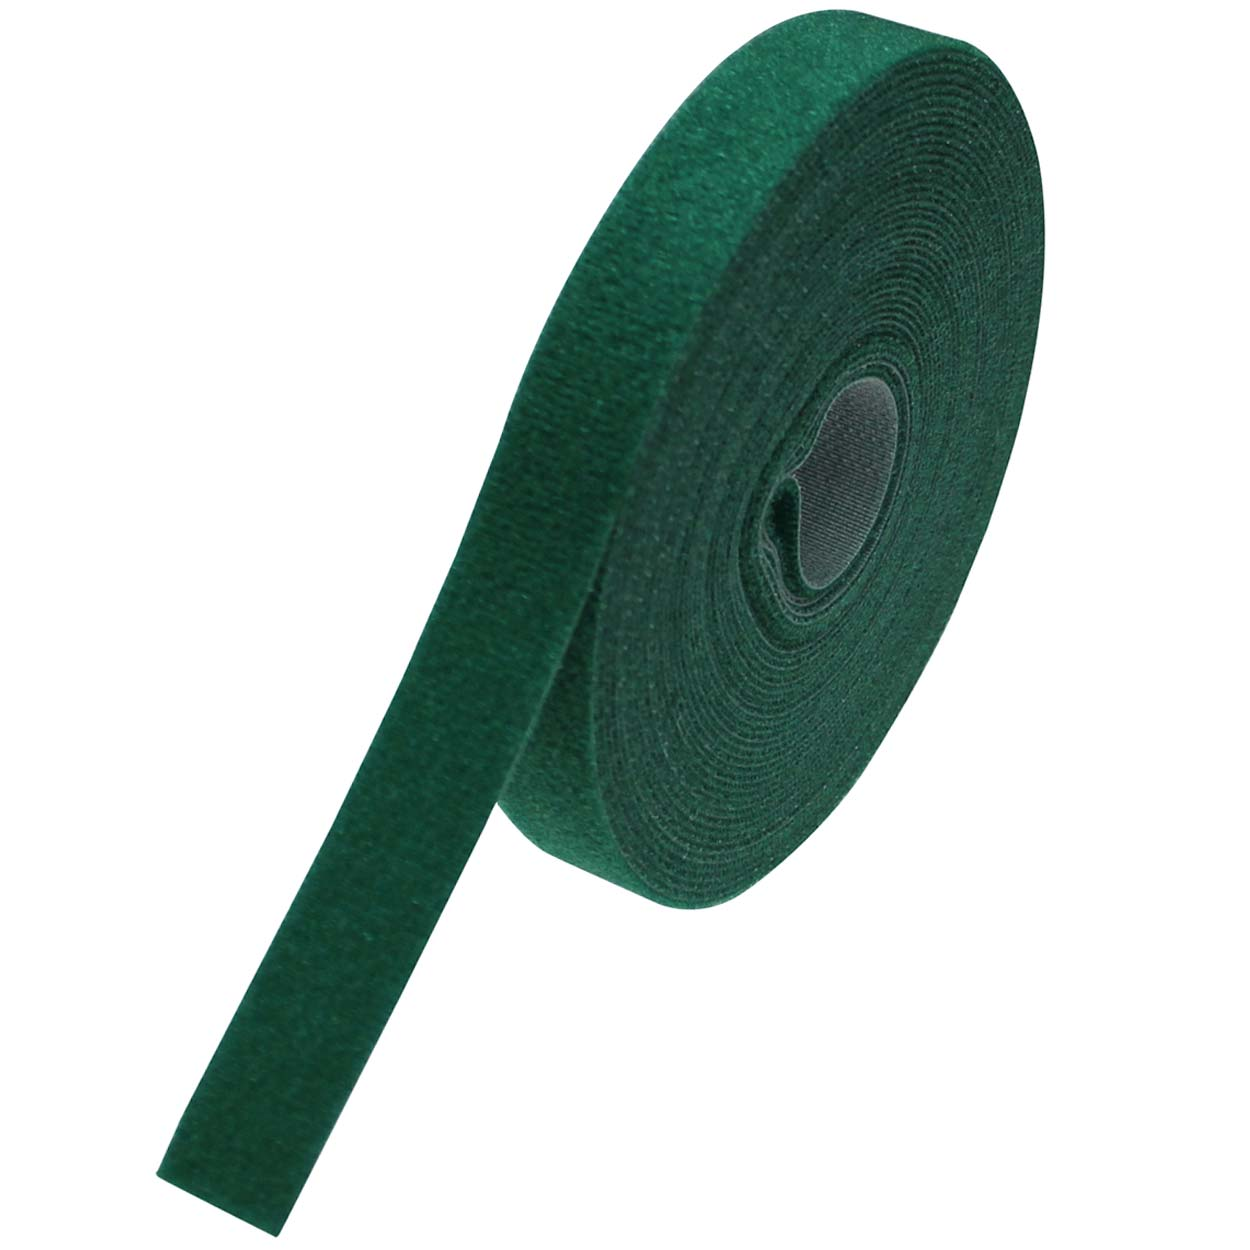 Velcro Cable Tie 0.78 x 10 Meter (20mm x 10 Meter) Male/Female, Green